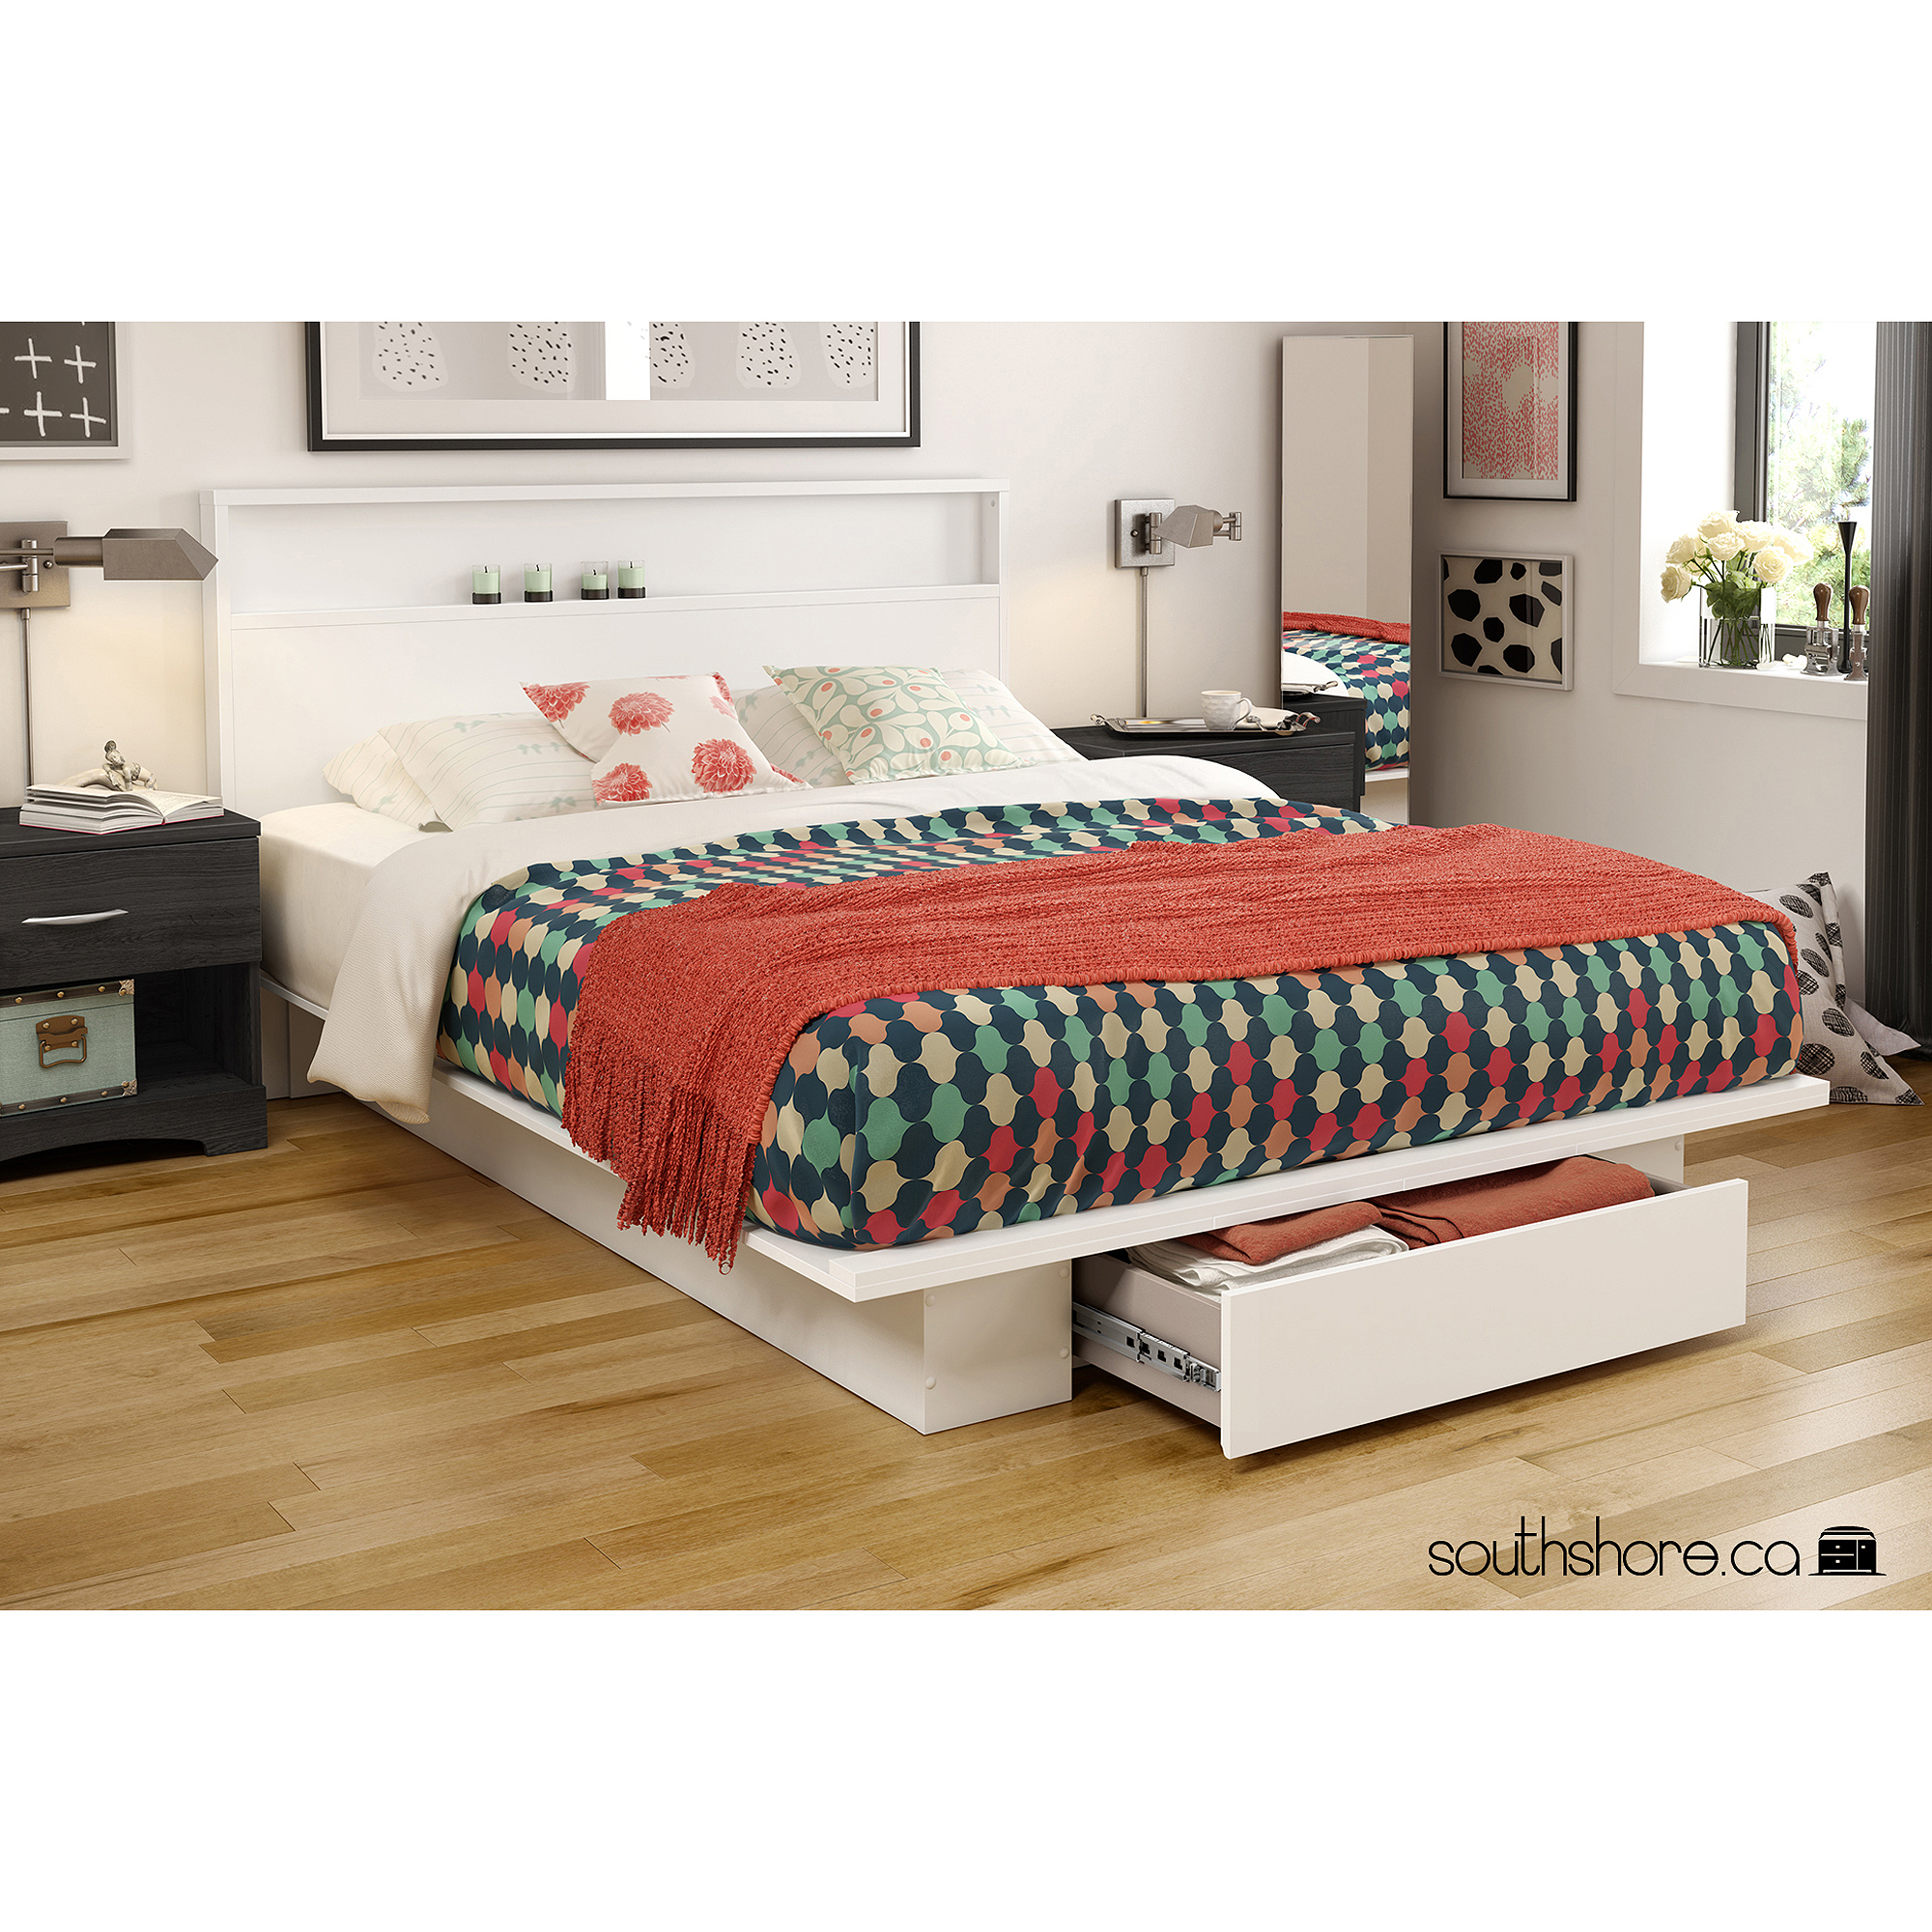 south shore holland fullqueen platform bed with drawer multiple finishes walmartcom - Queen Platform Bed Frame With Drawers